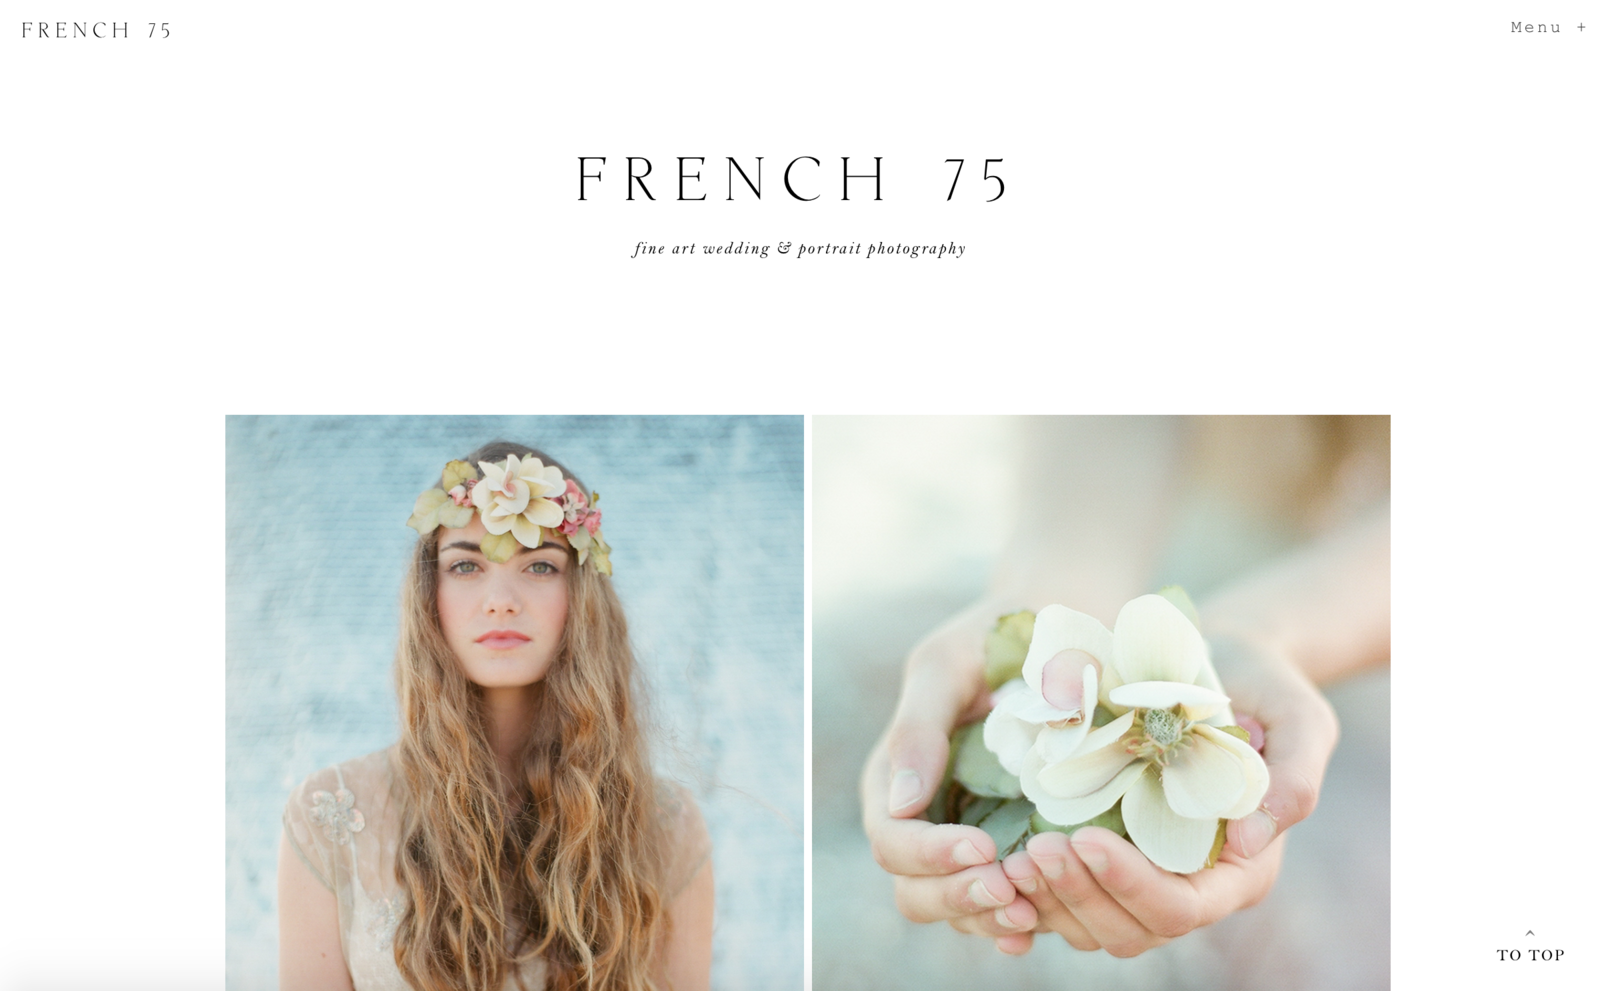 01-French 75 Desktop-Tonic Site Shop